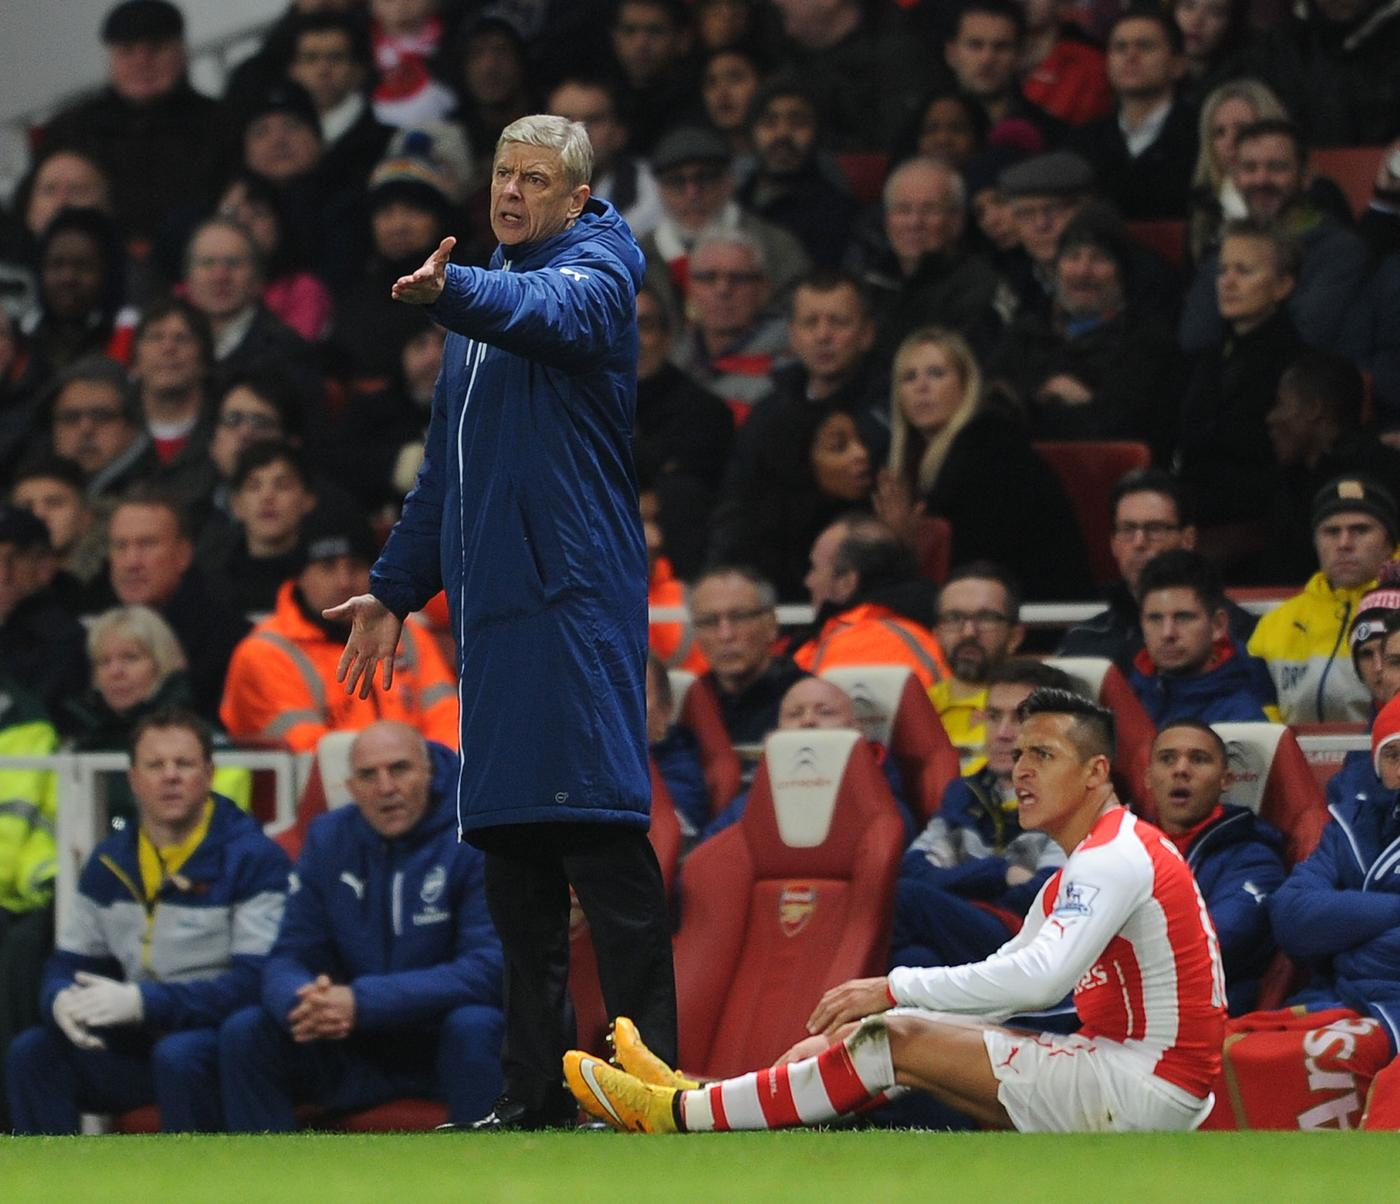 Why Arsenal and Arsene Wenger should not worry about Chelsea emulating the Gunners' Invincibles